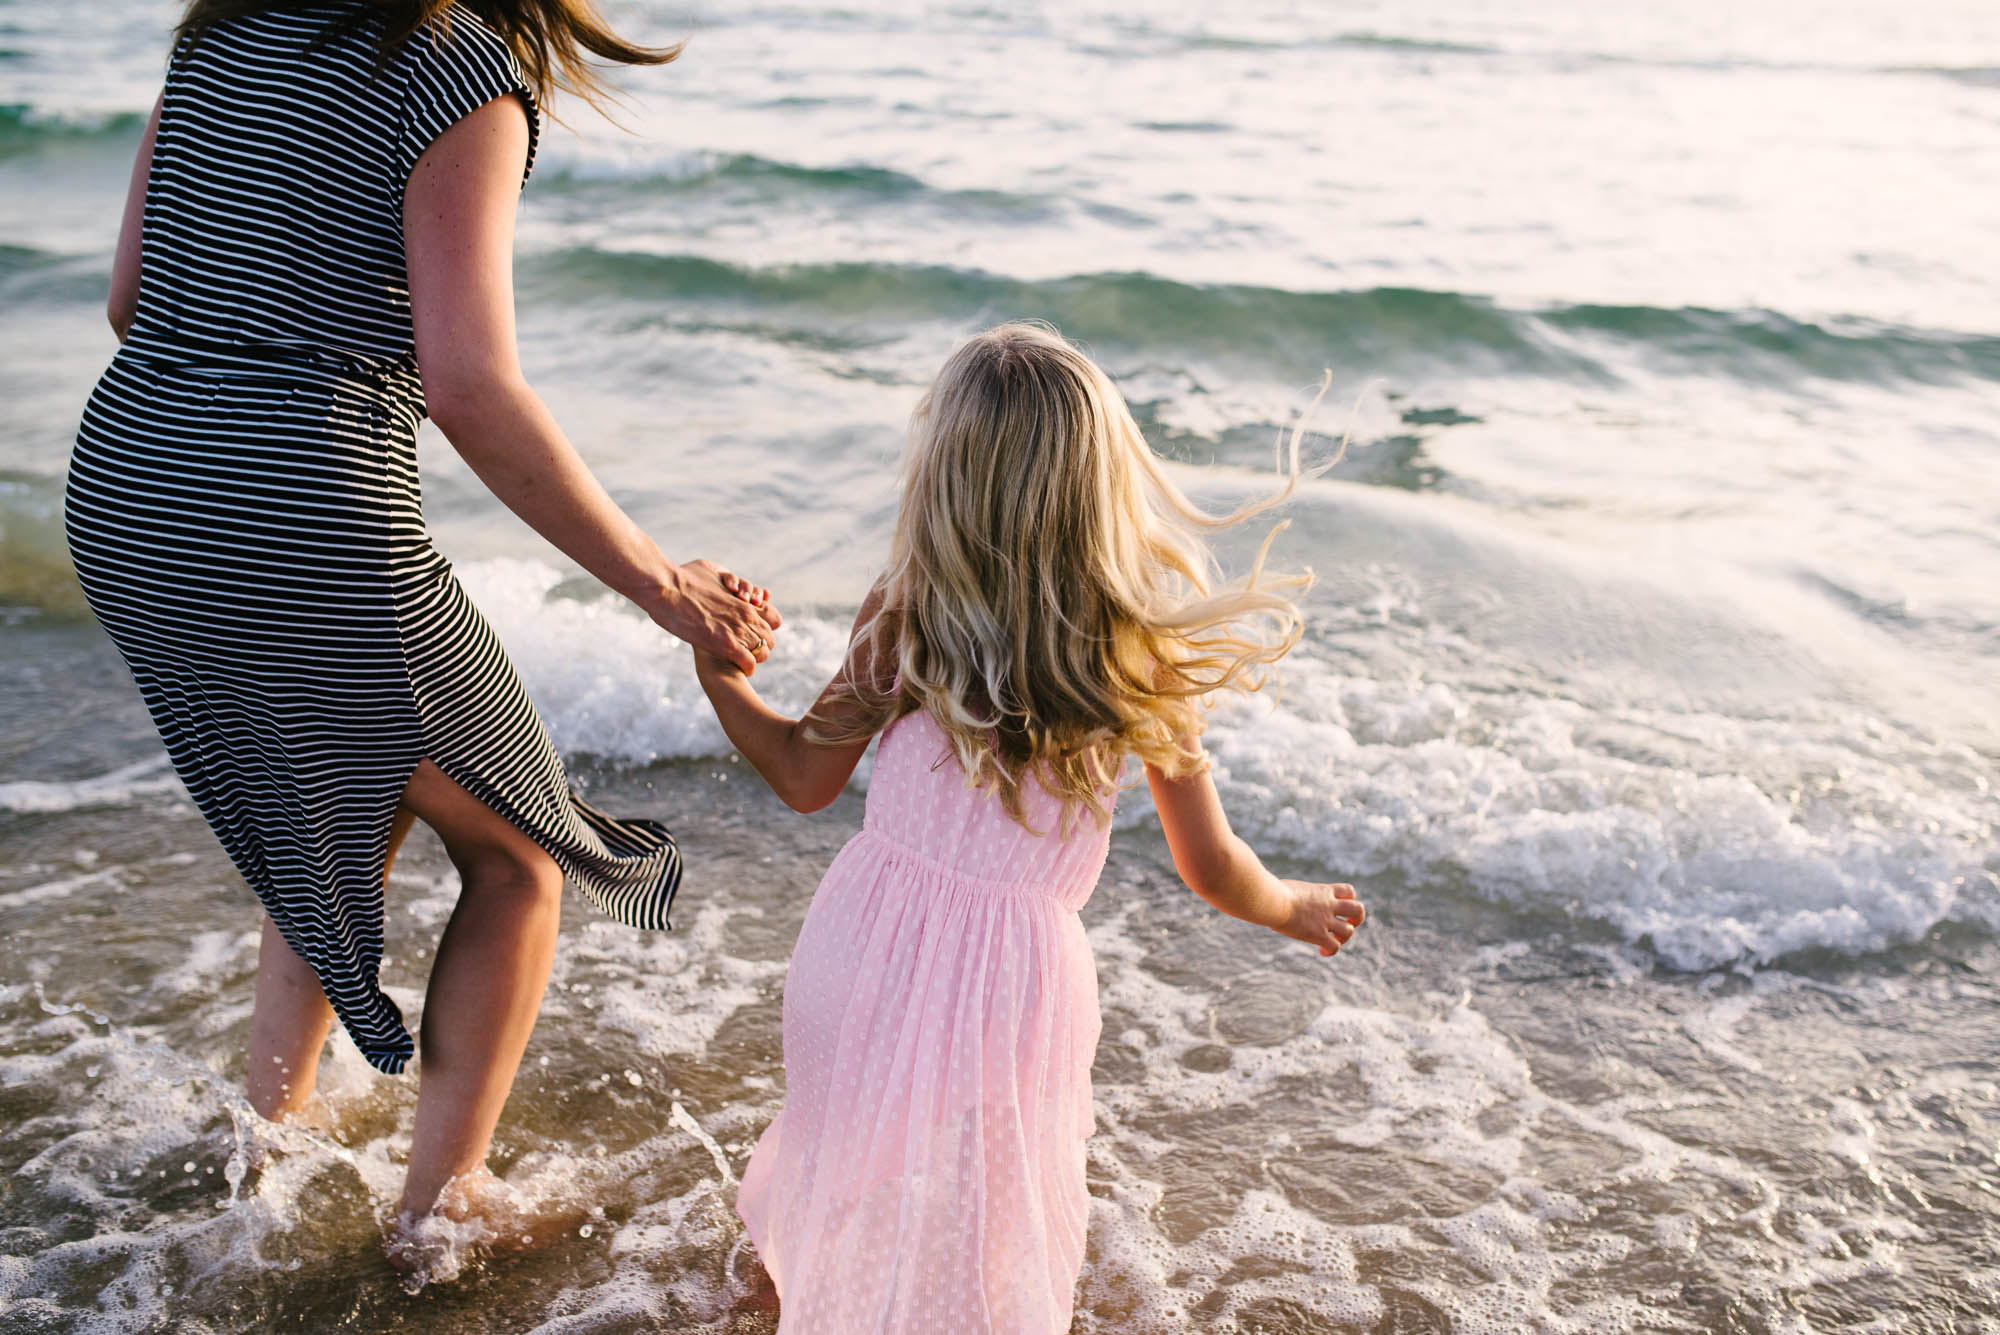 mum_holding_hands_and_playing_with_daughter_at_the_beach_melbourne_family_photographer-1.jpg